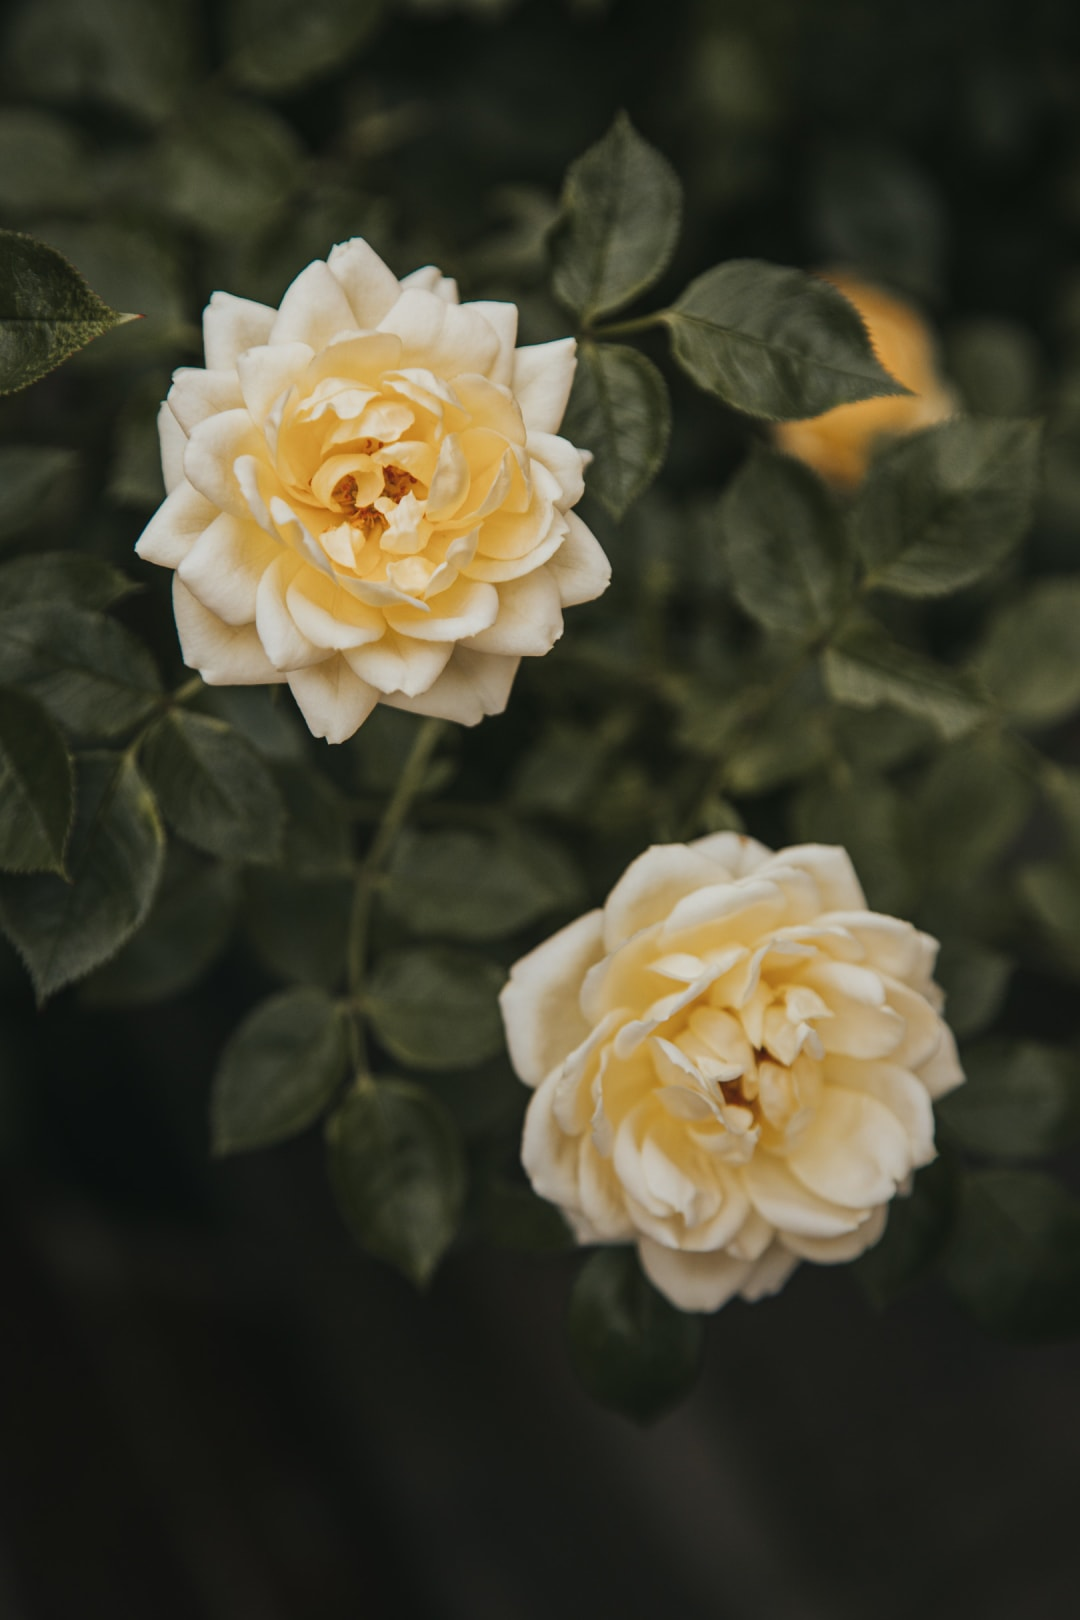 Two blooming soft yellow roses from a patio rose bush.